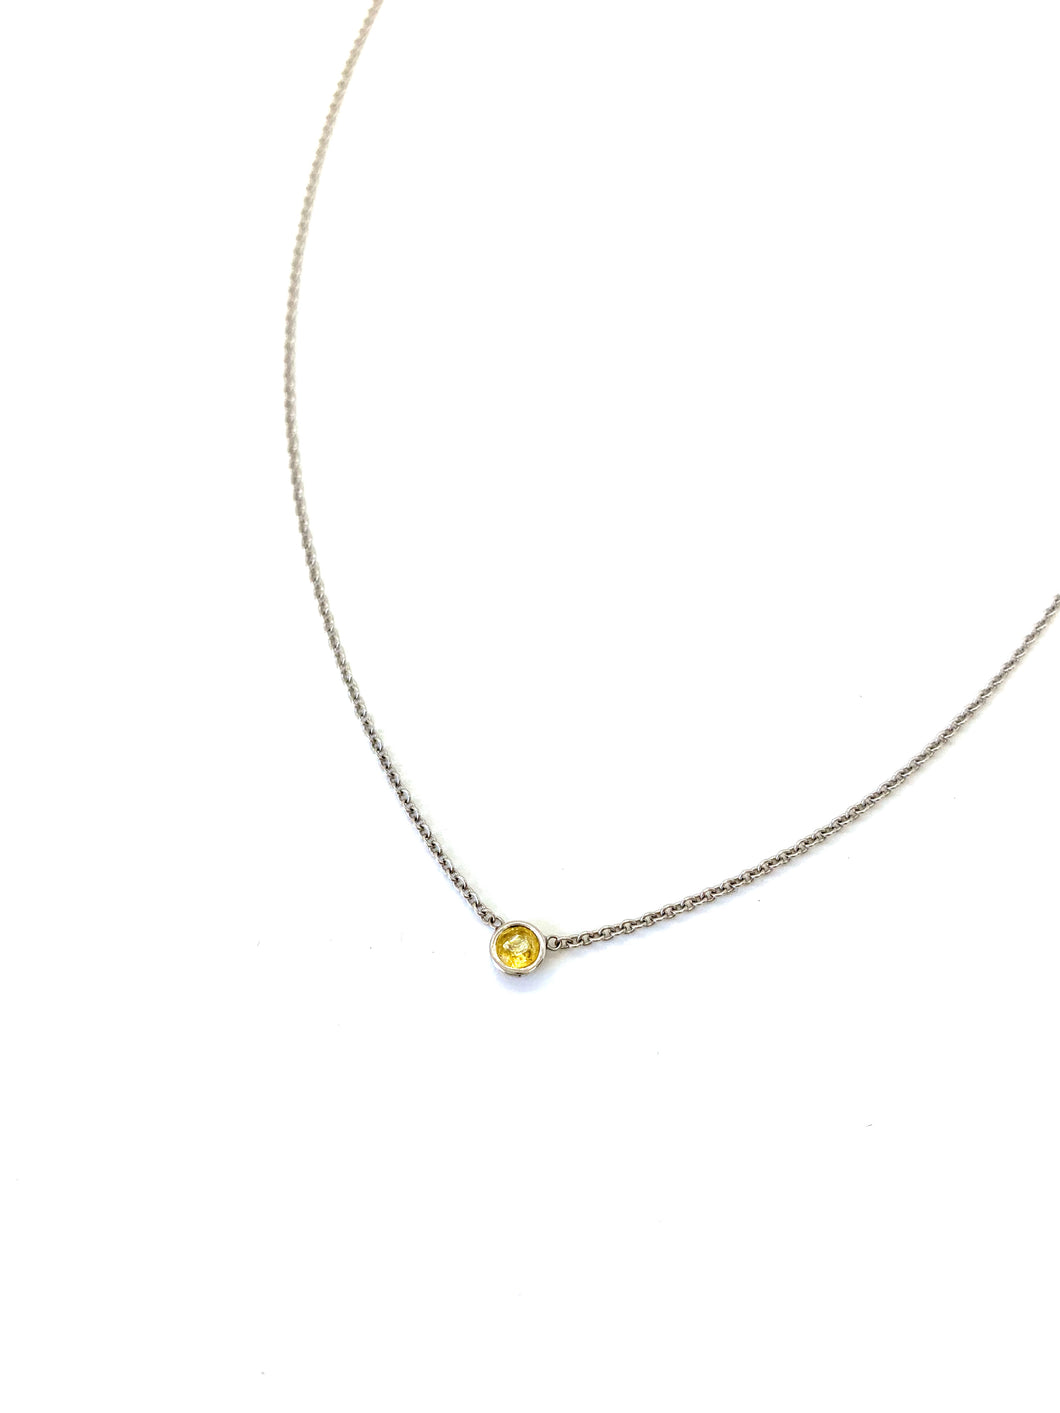 Materials include a 16-inch 14k white gold chain w/ a 3mm yellow sapphire gemstone